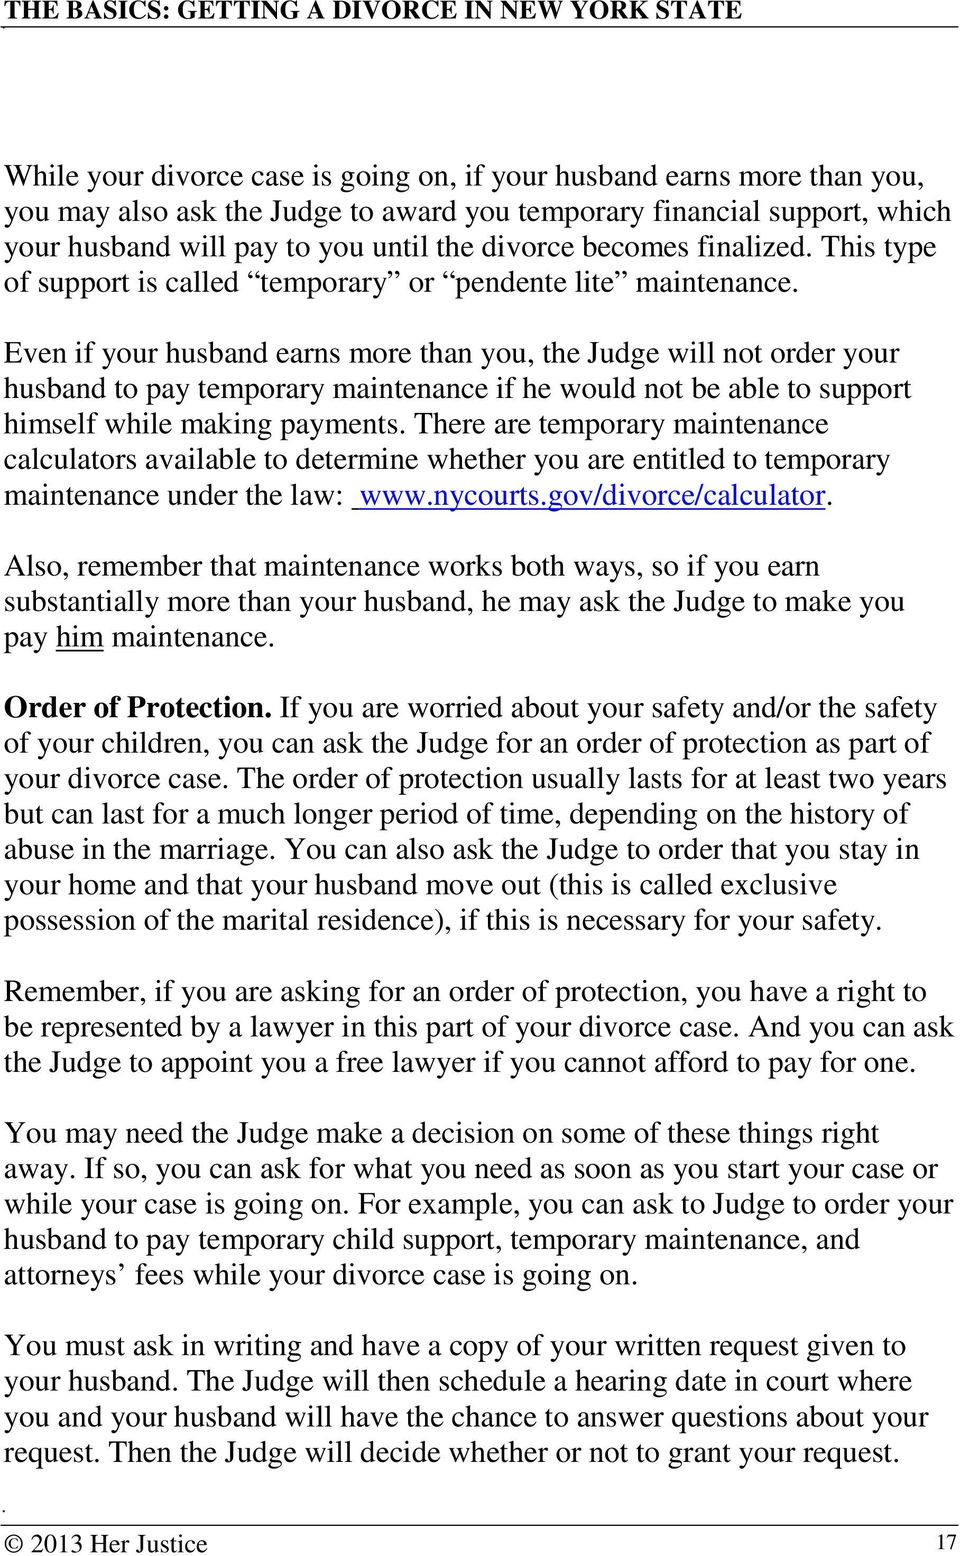 Even if your husband earns more than you, the Judge will not order your husband to pay temporary maintenance if he would not be able to support himself while making payments.